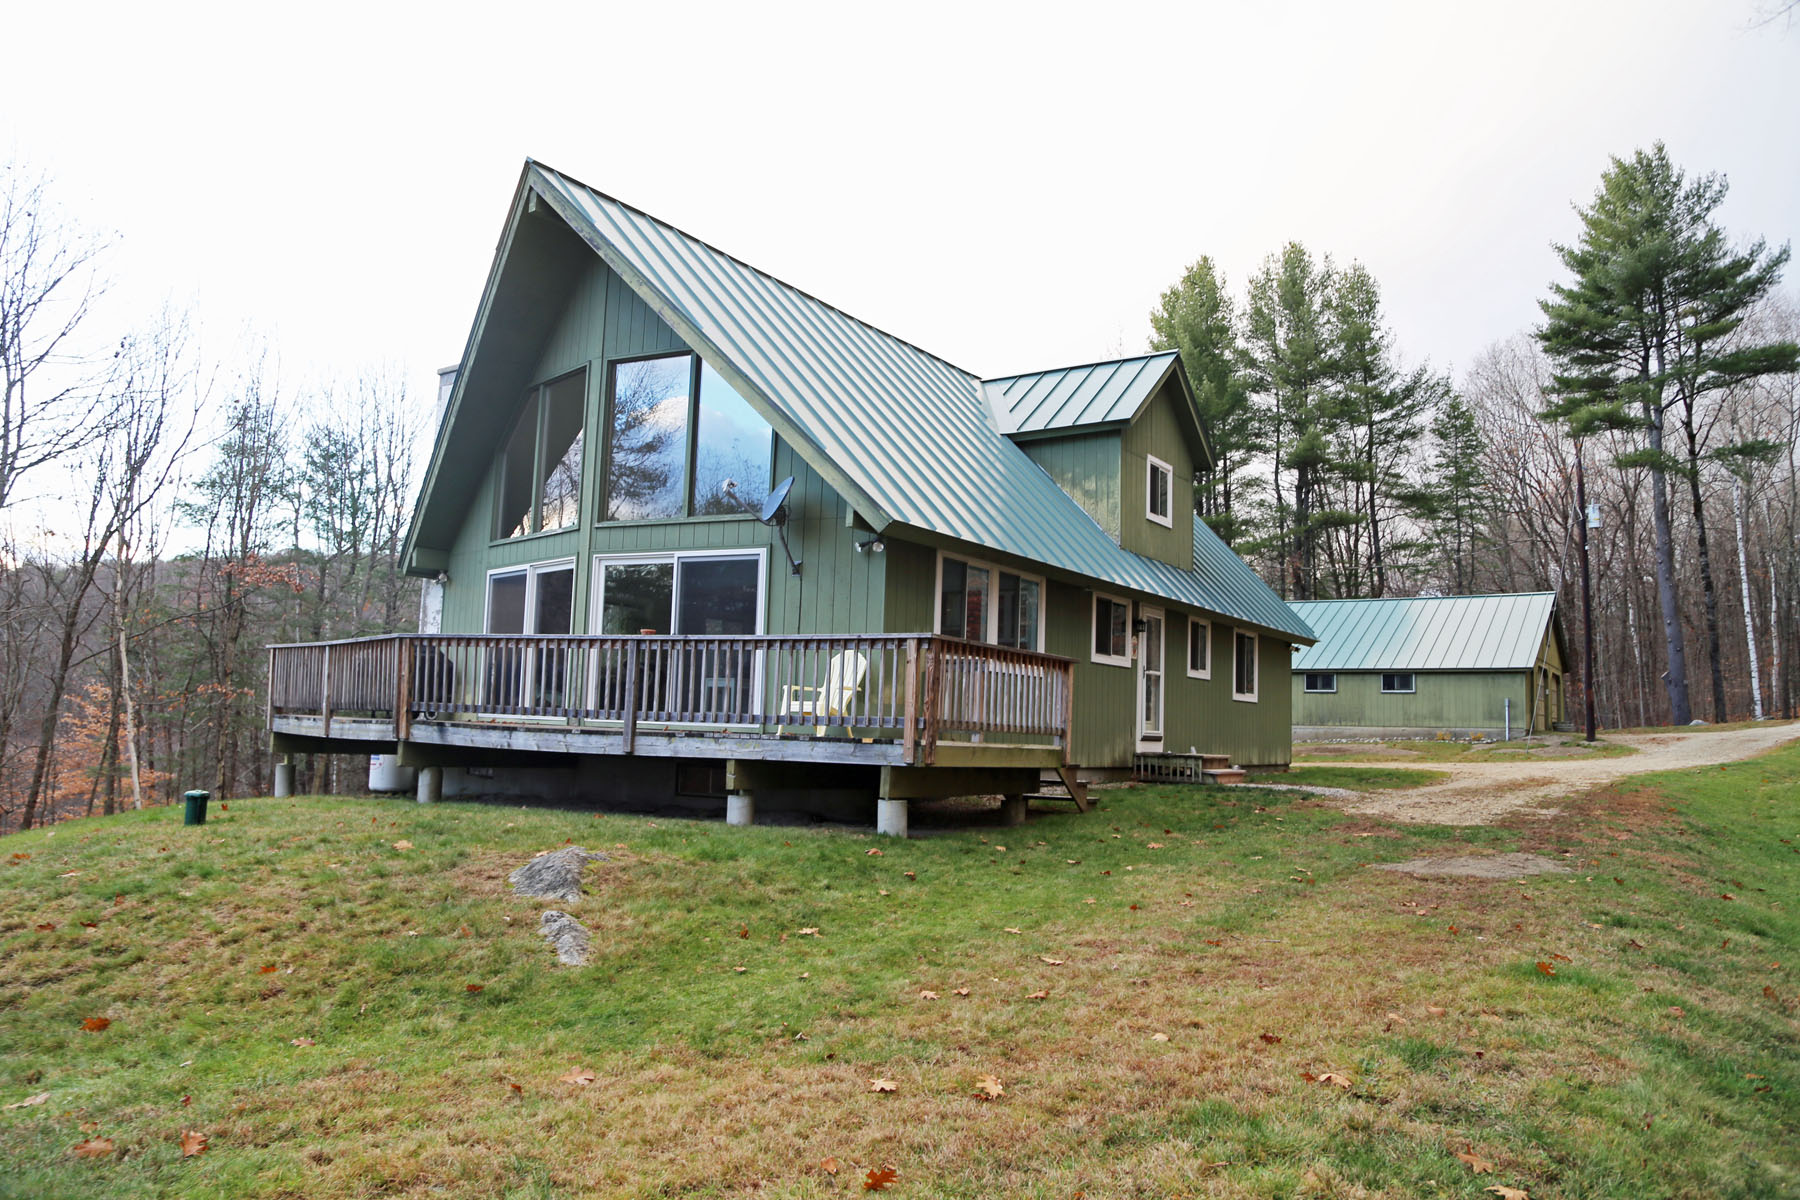 Single Family Home for Sale at 114 Stearns Road, Wilmot 114 Stearns Rd Wilmot, New Hampshire 03287 United States